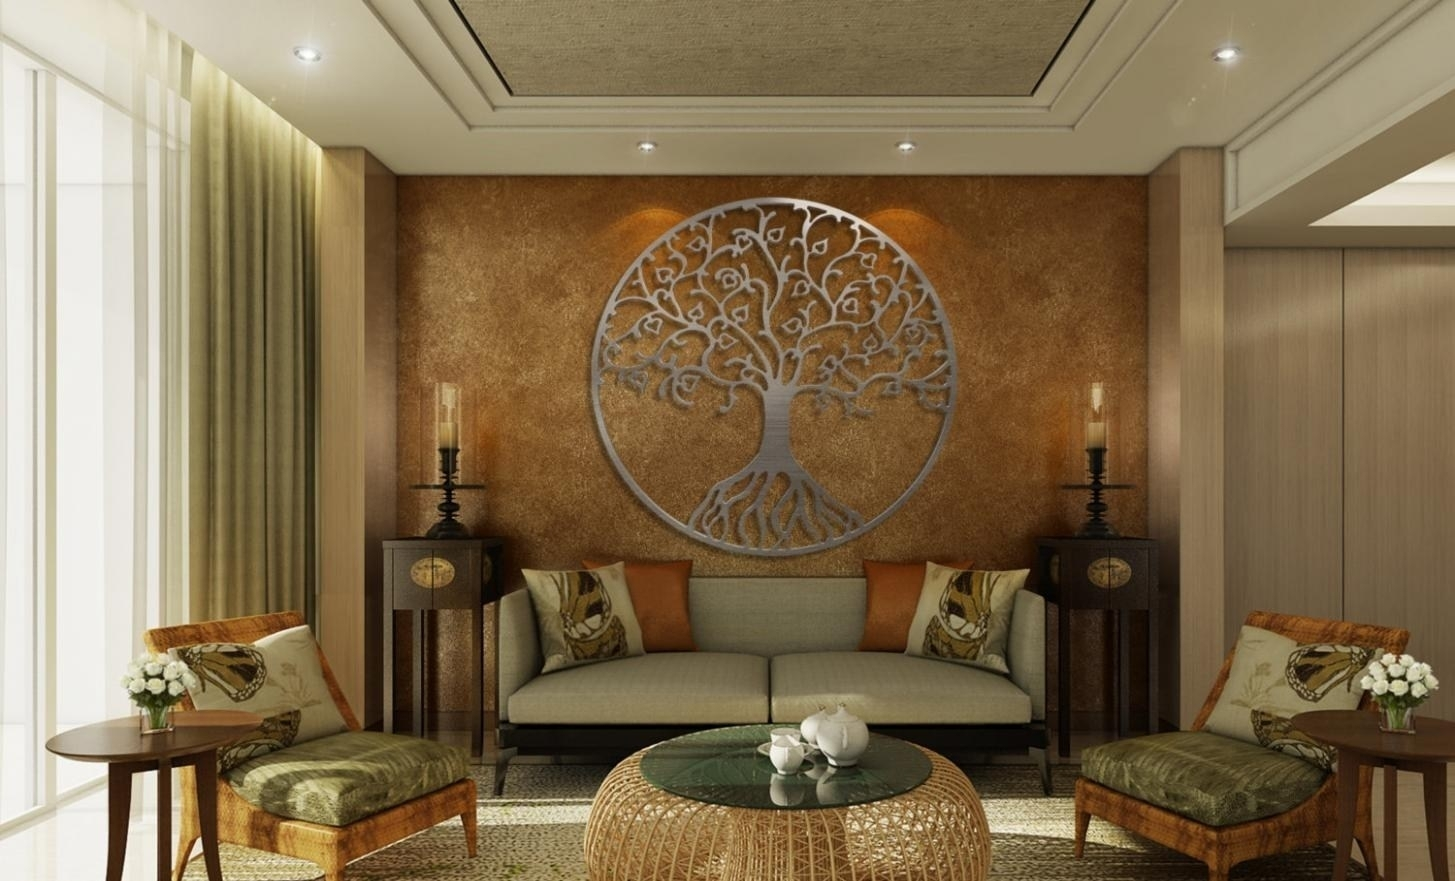 Cordial Oversized Wall Art Oversizedwall Photo Gallery Living Room Throughout Oversized Wall Art (View 8 of 20)